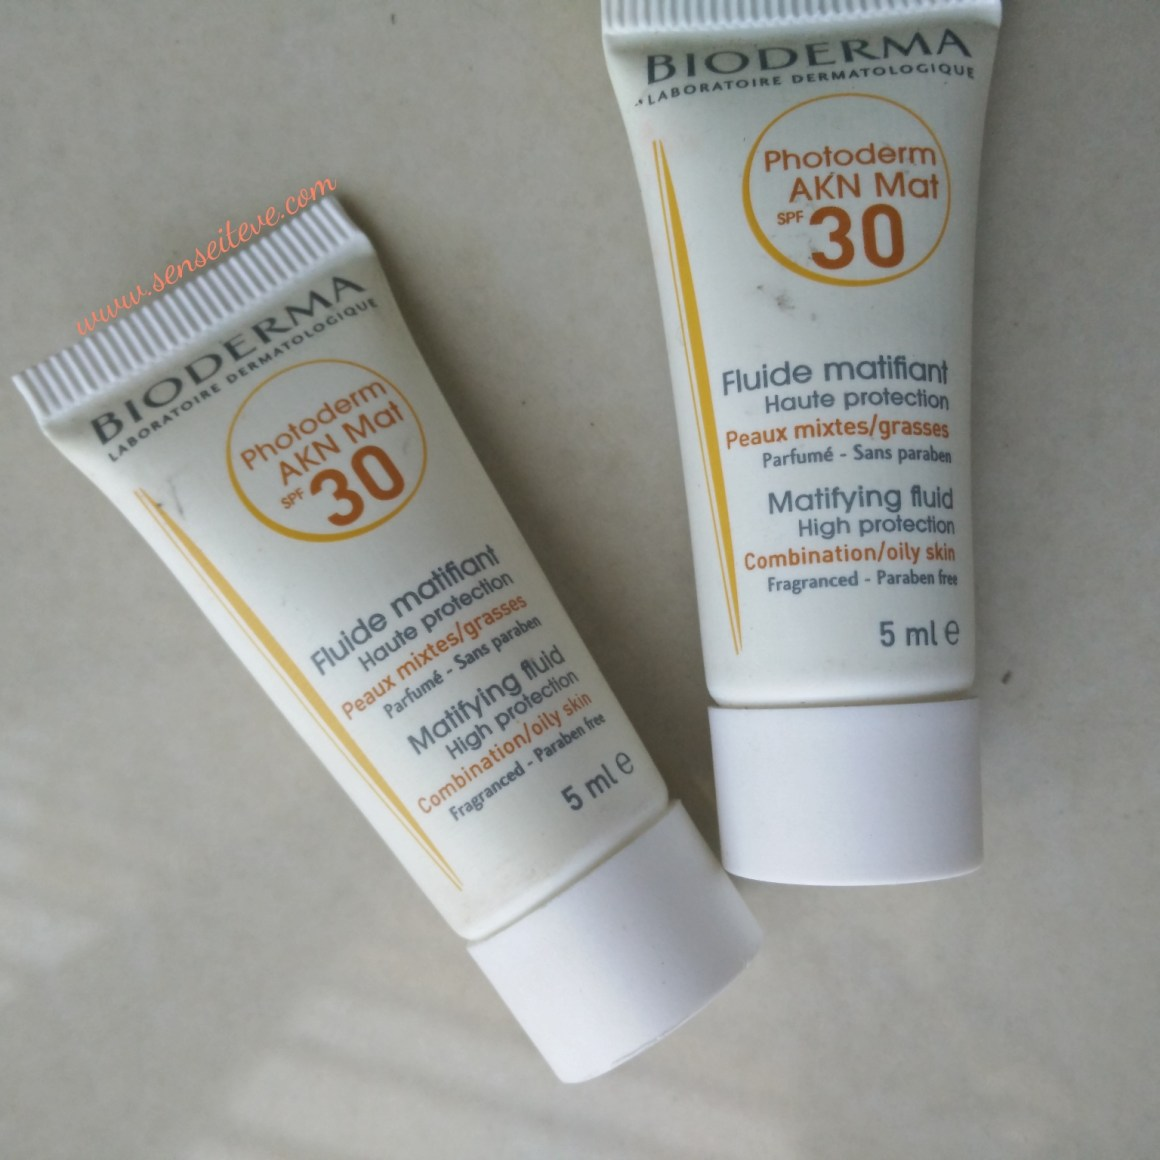 Bioderma Photoderm AKN Mat Sunscreen SPF 30 Review